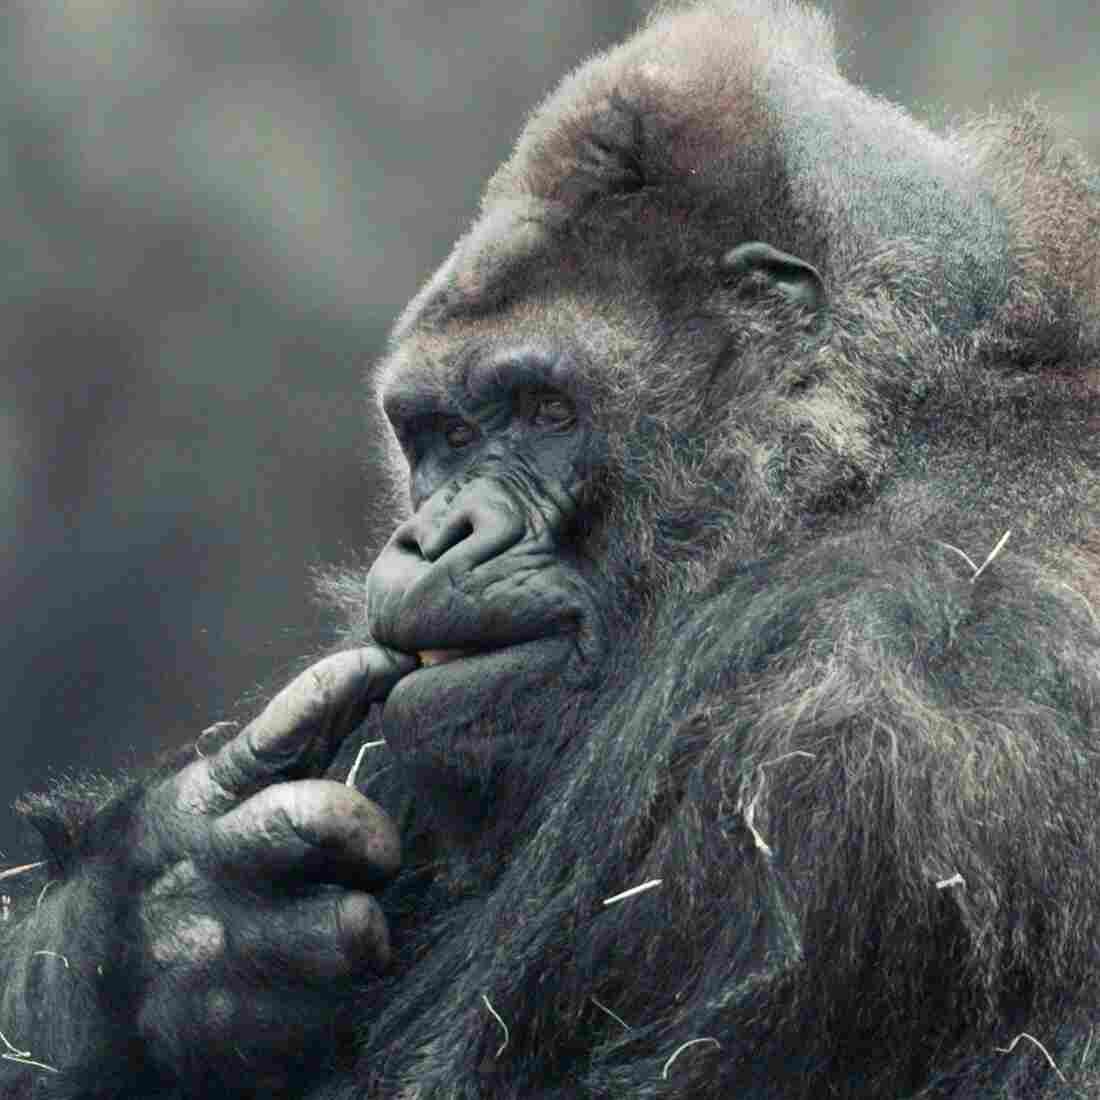 Ivan Dies At 50: A Gorilla Life, Remembered